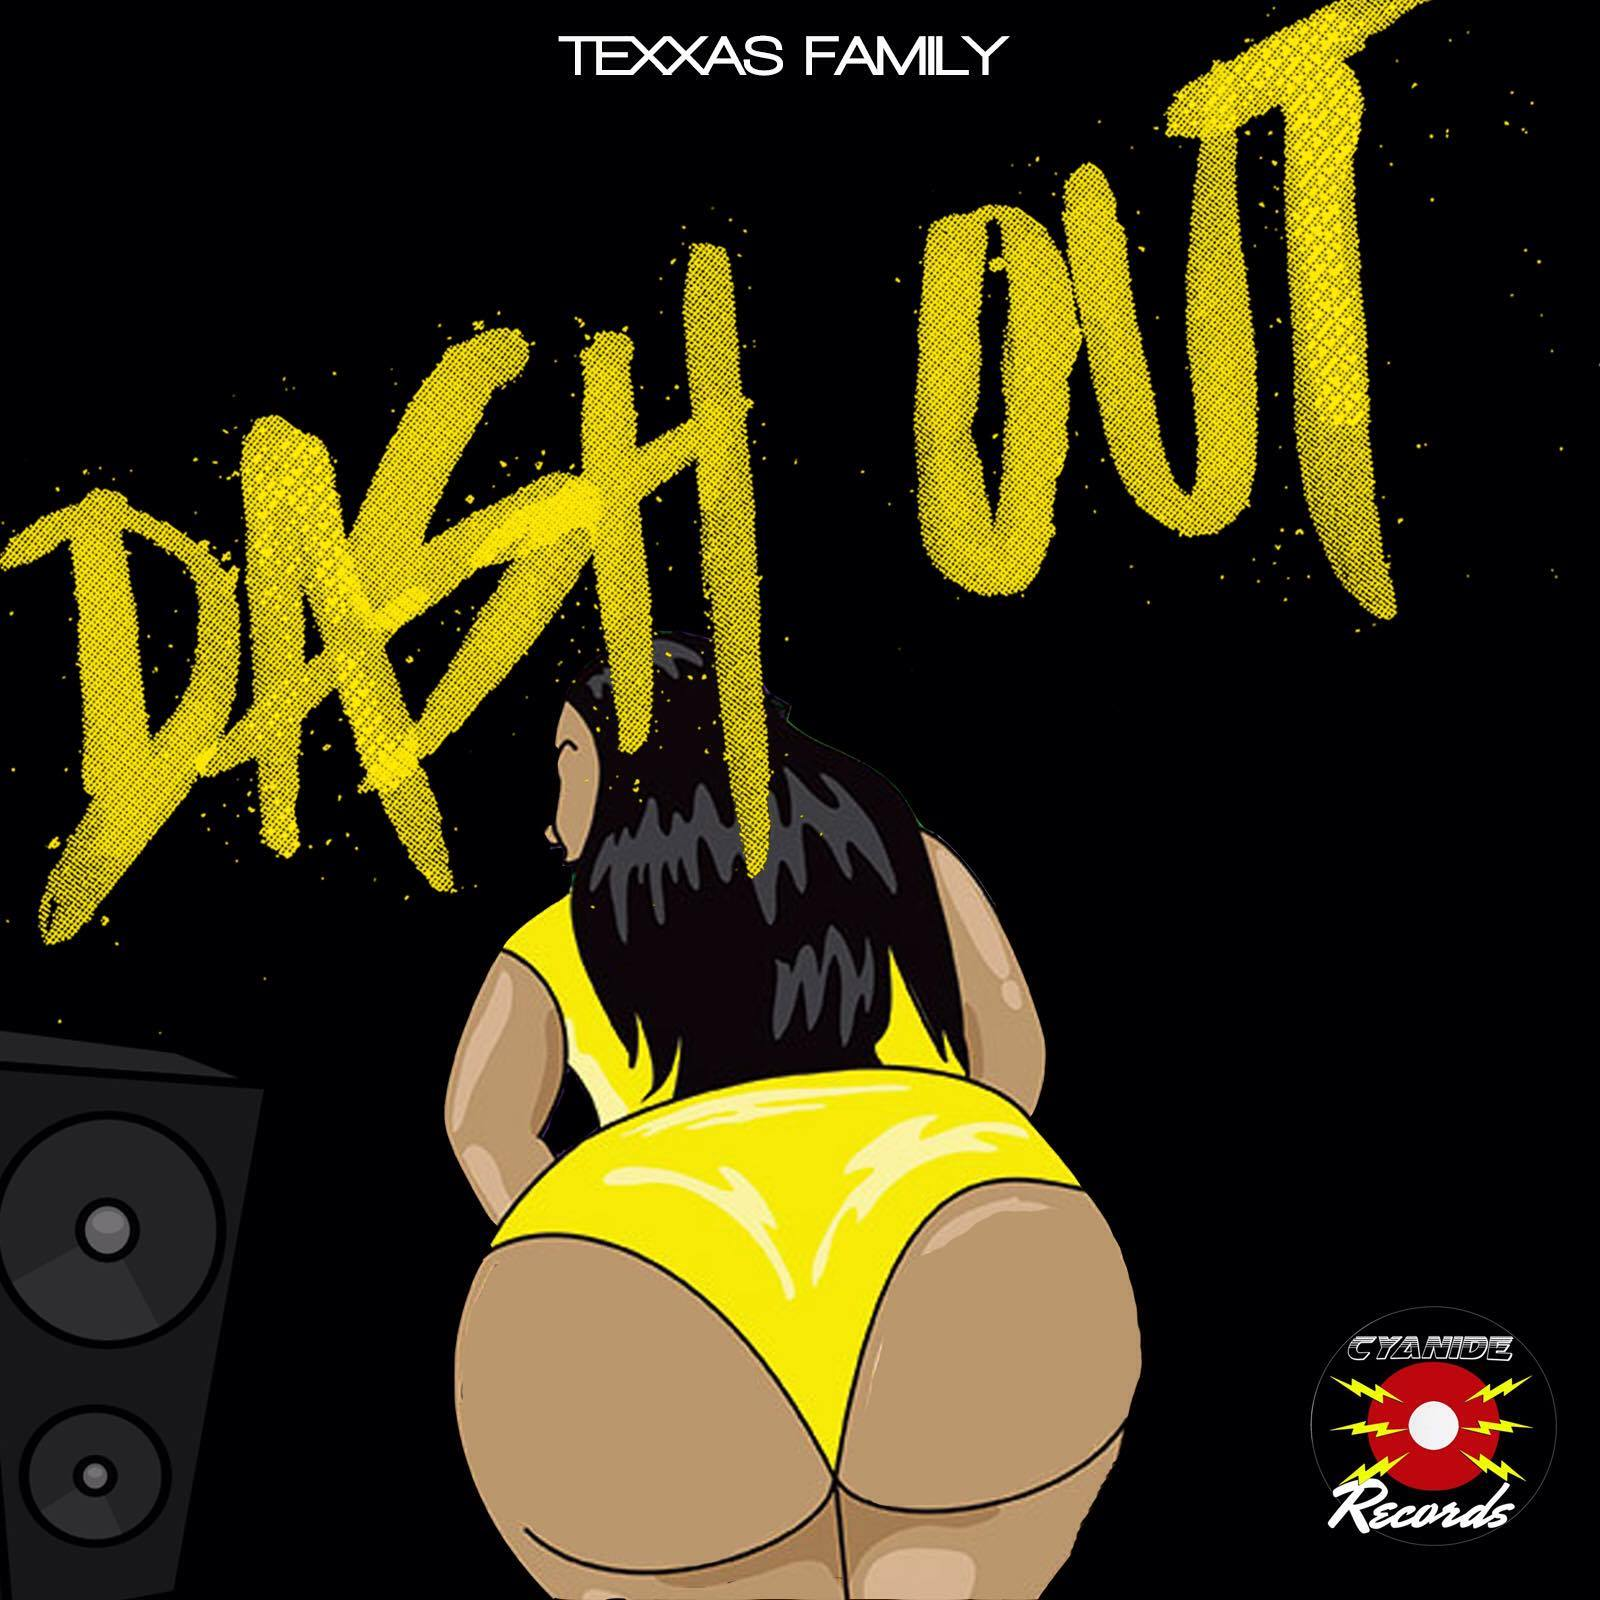 New: Texxas Family – Dash Out